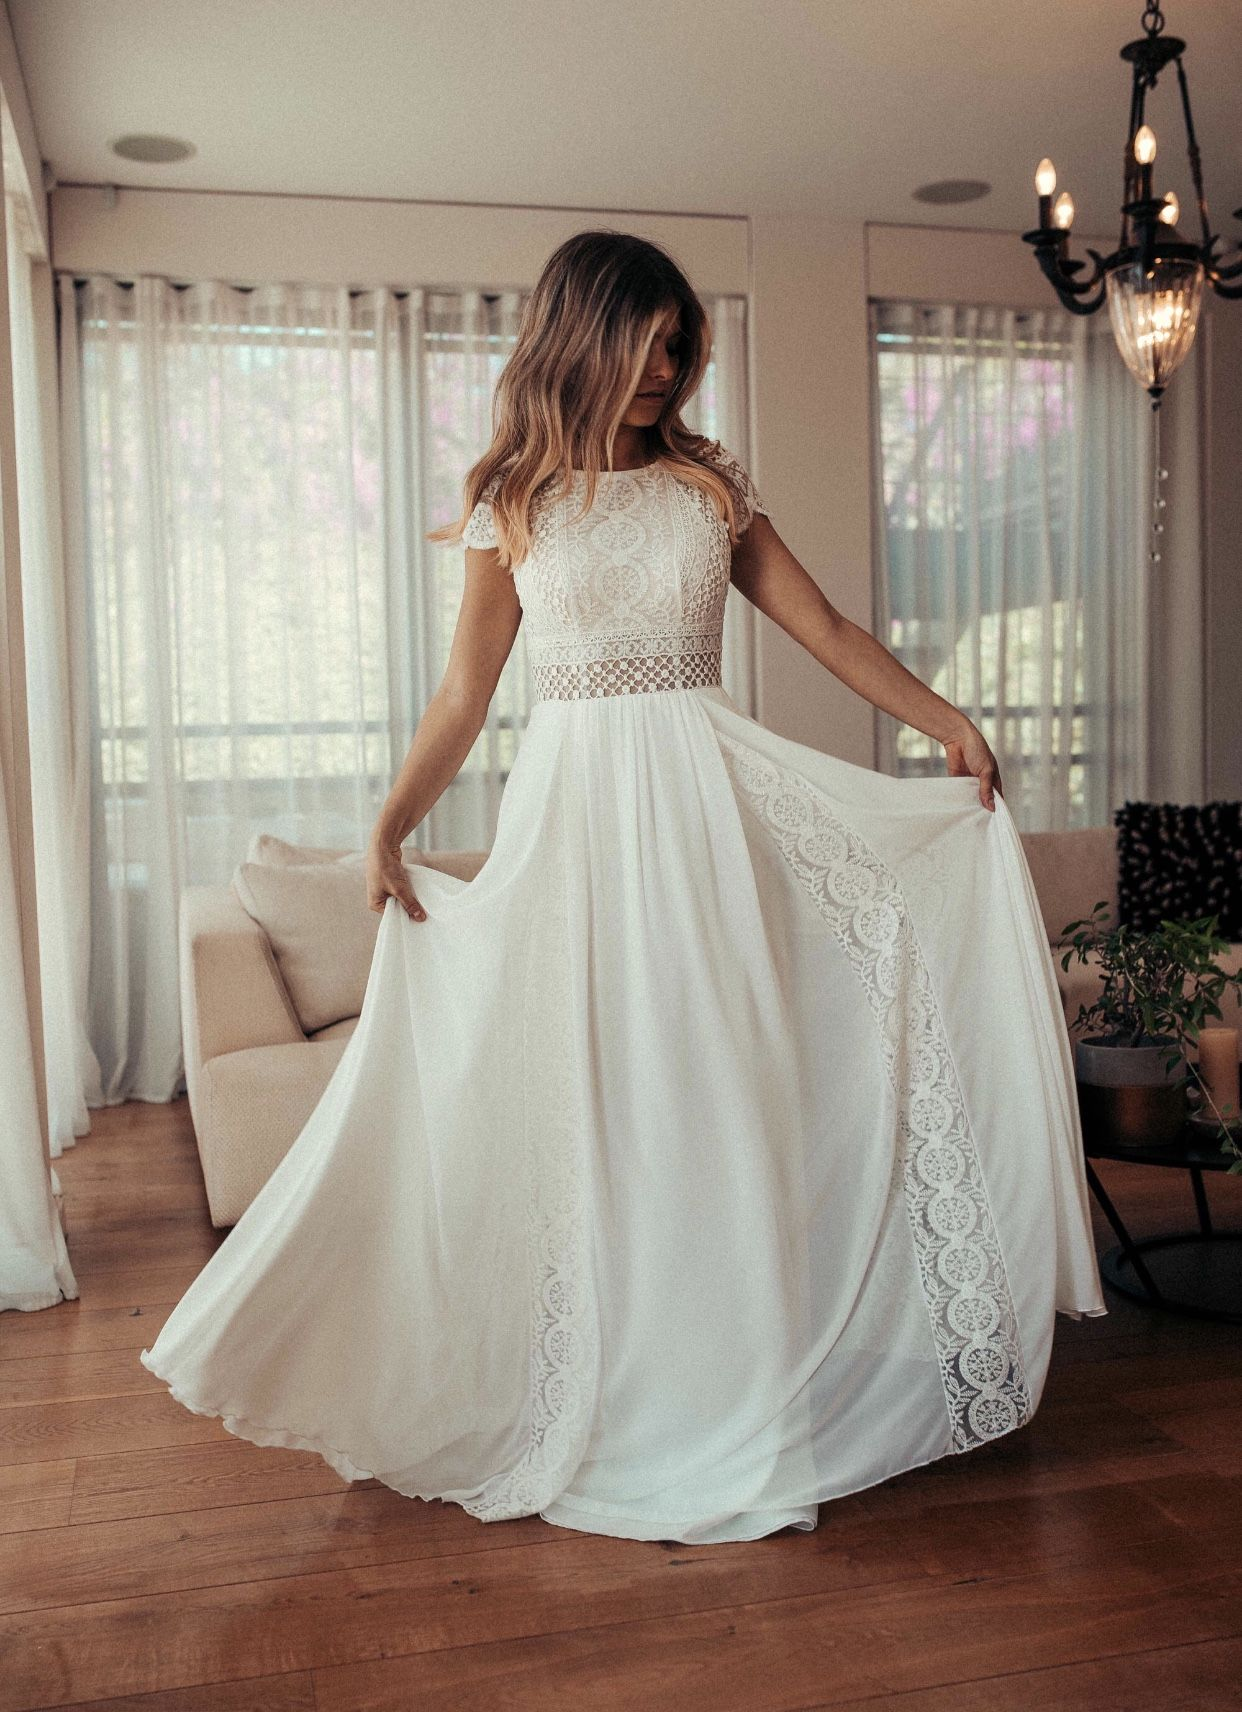 Big girl wedding dresses  Pin by Lily Loubriel on The Big Day  Pinterest  Big and Wedding